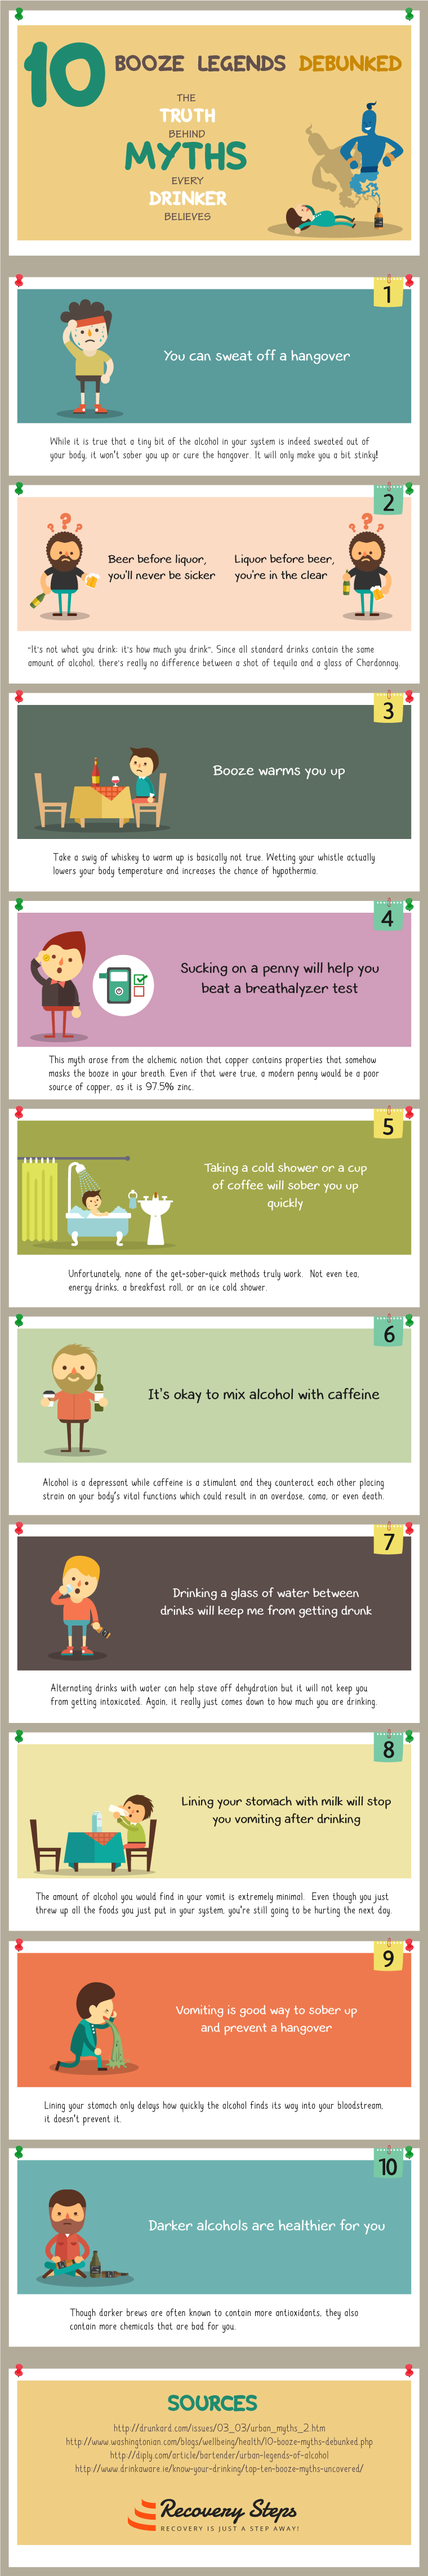 10 Alcohol Myths Debunked Infographic